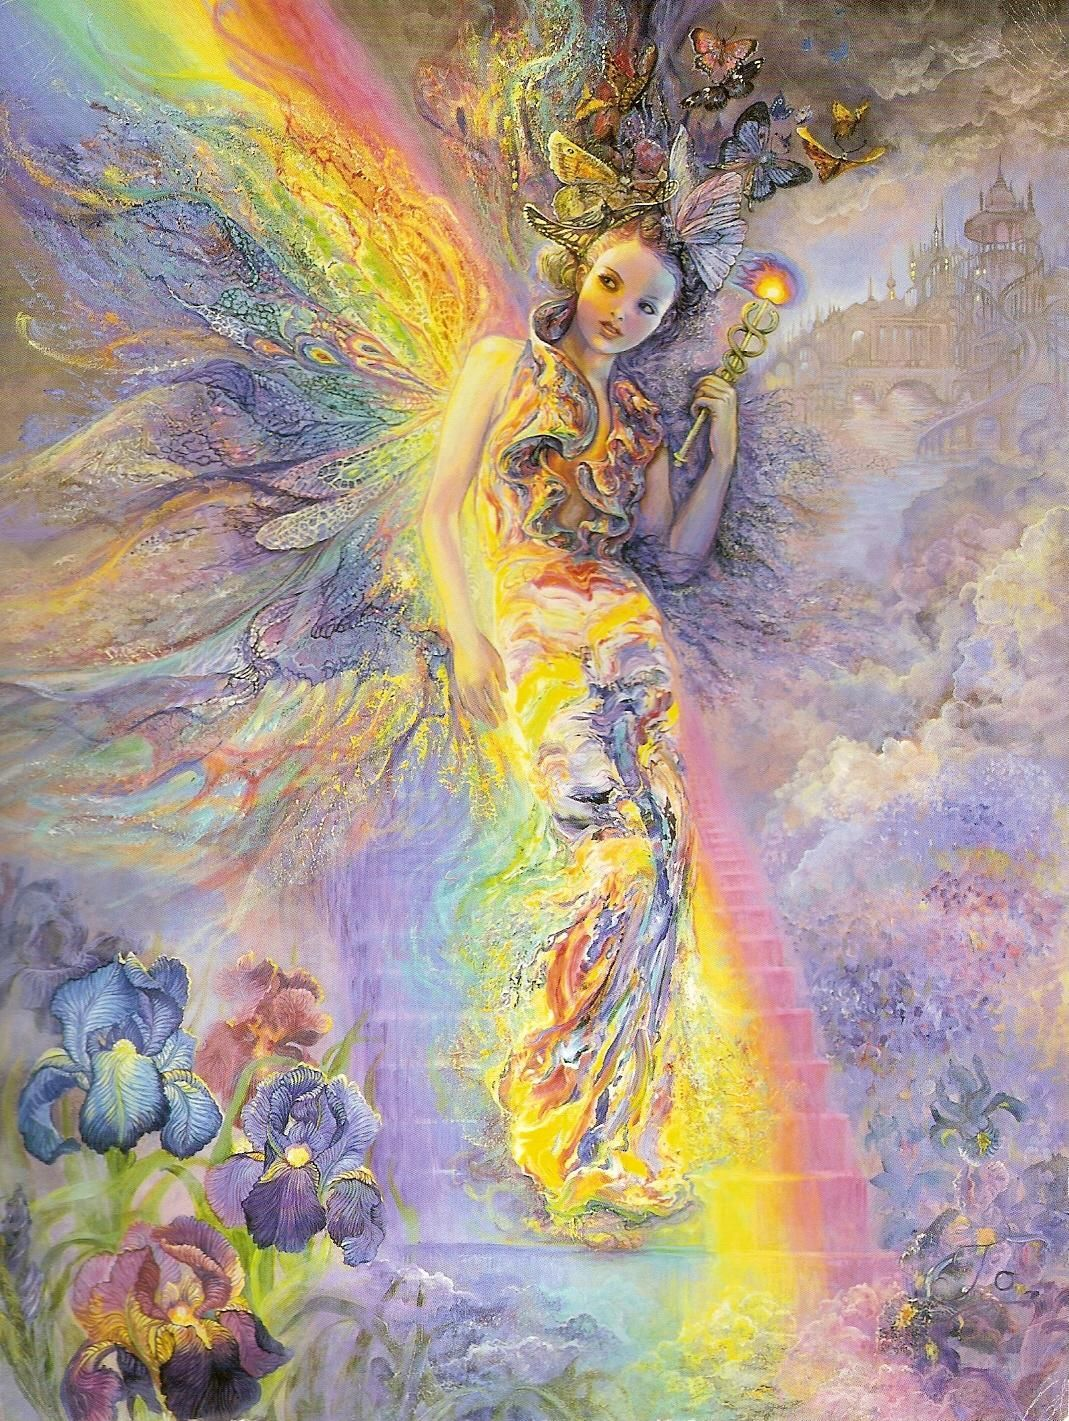 Iris, Ancient Greek Goddess of the Rainbow and Messenger of the Gods